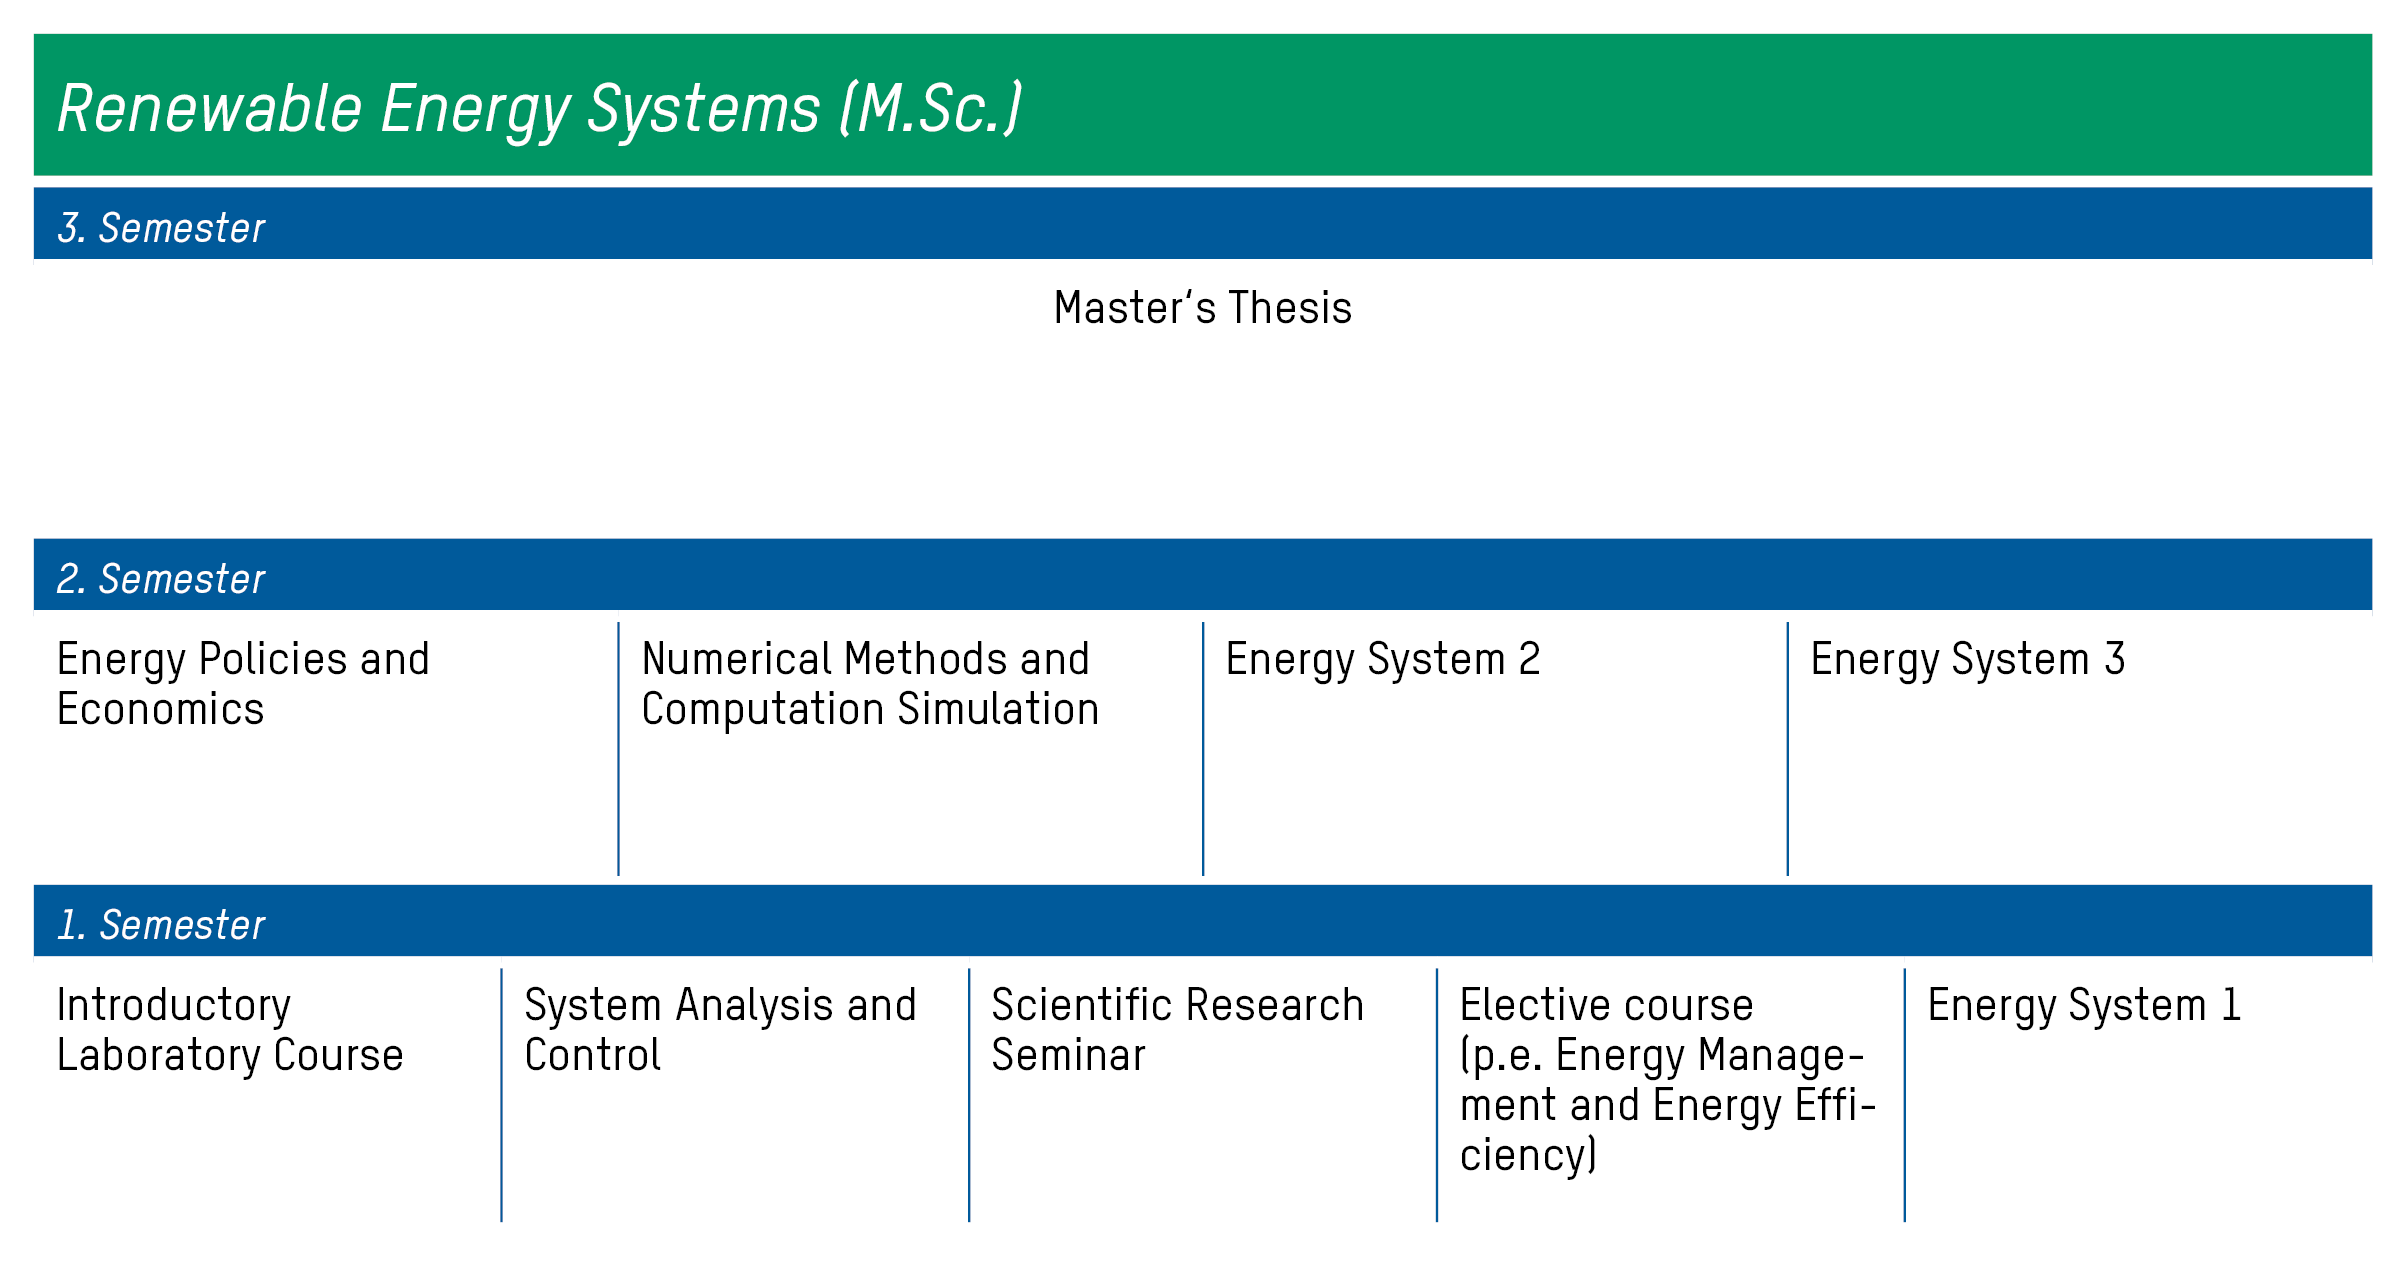 mba thesis renewable energy Thesis ideas for renewable energy - thesis examples for essays certified professional essay writers & resume experts creating amazing resumes that help clients across the globe win more interviews with top employers and get better job offers everyday.